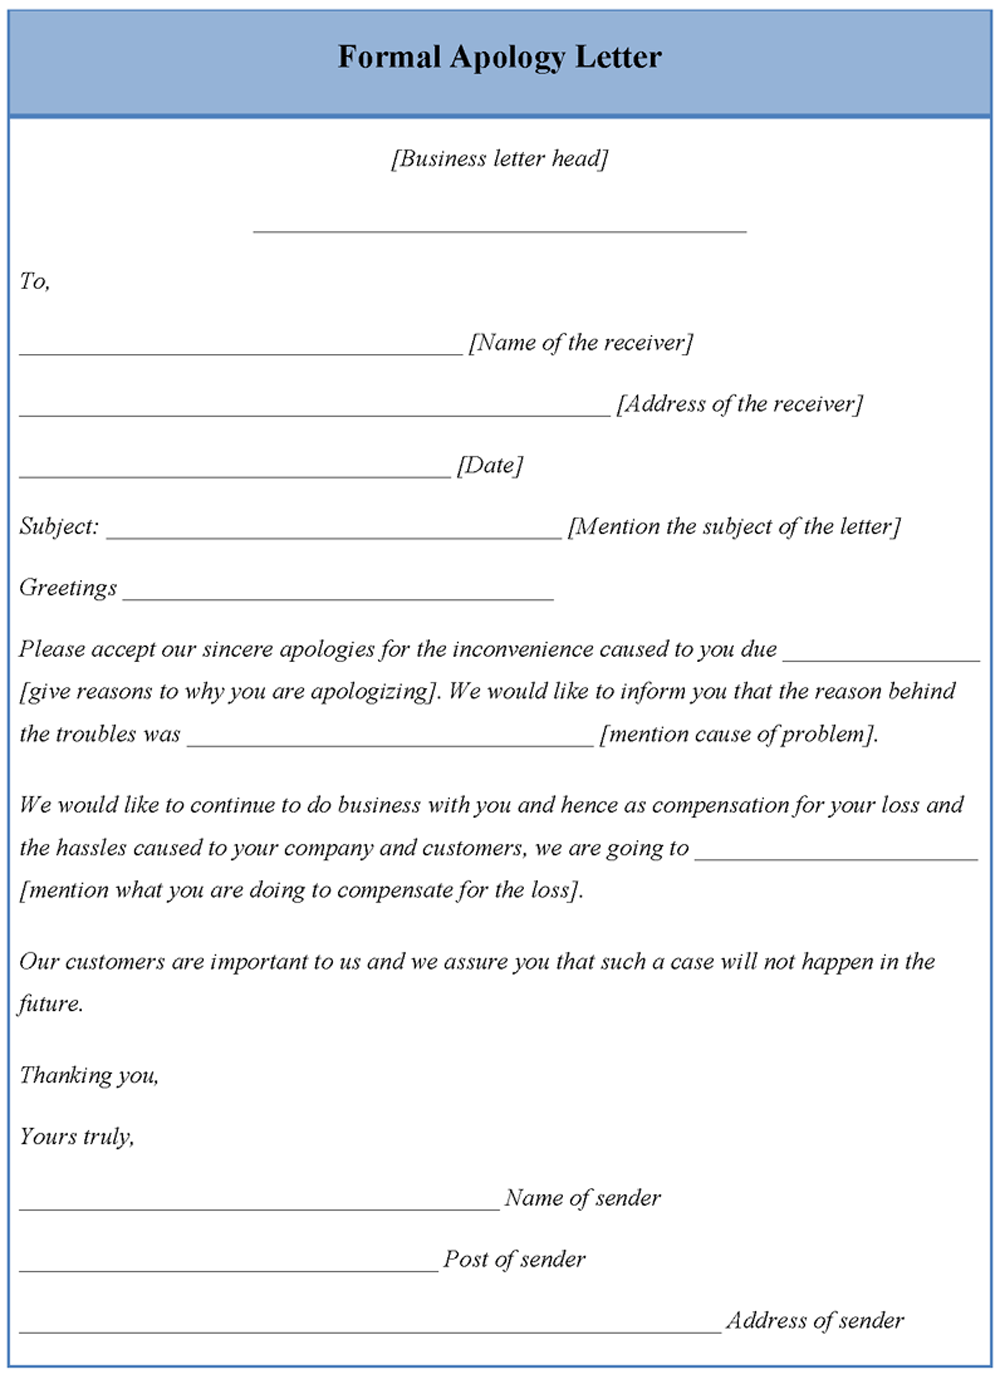 Apology letter format free download apology letter spiritdancerdesigns Image collections